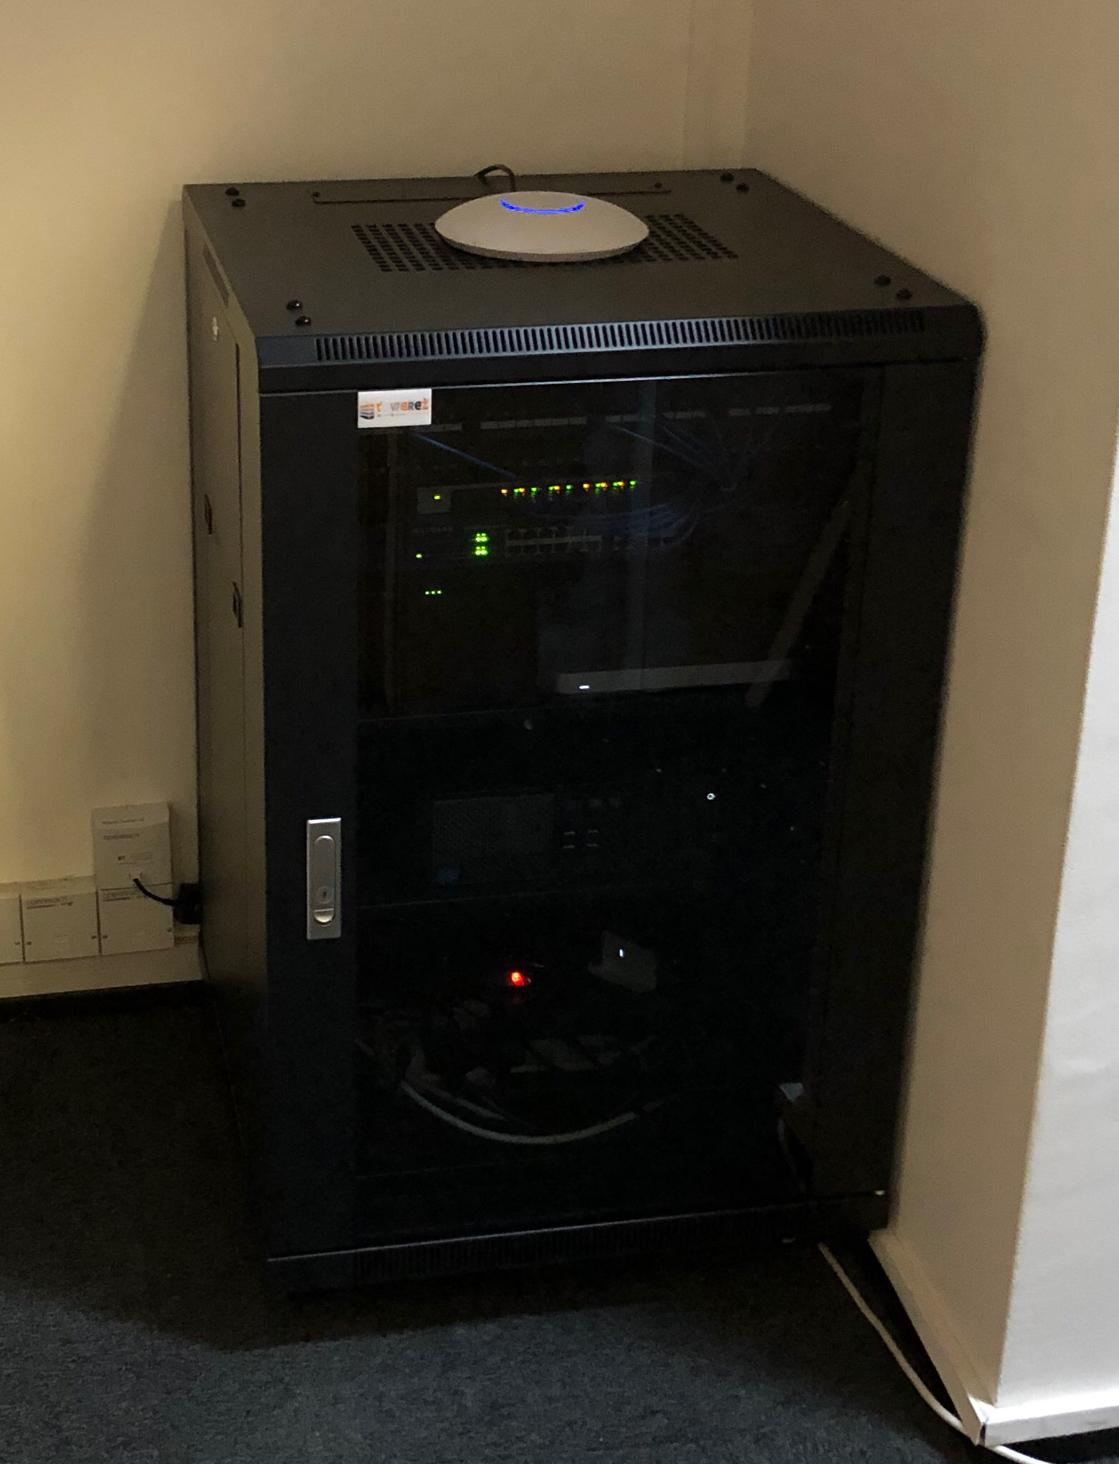 Here is our latest server install